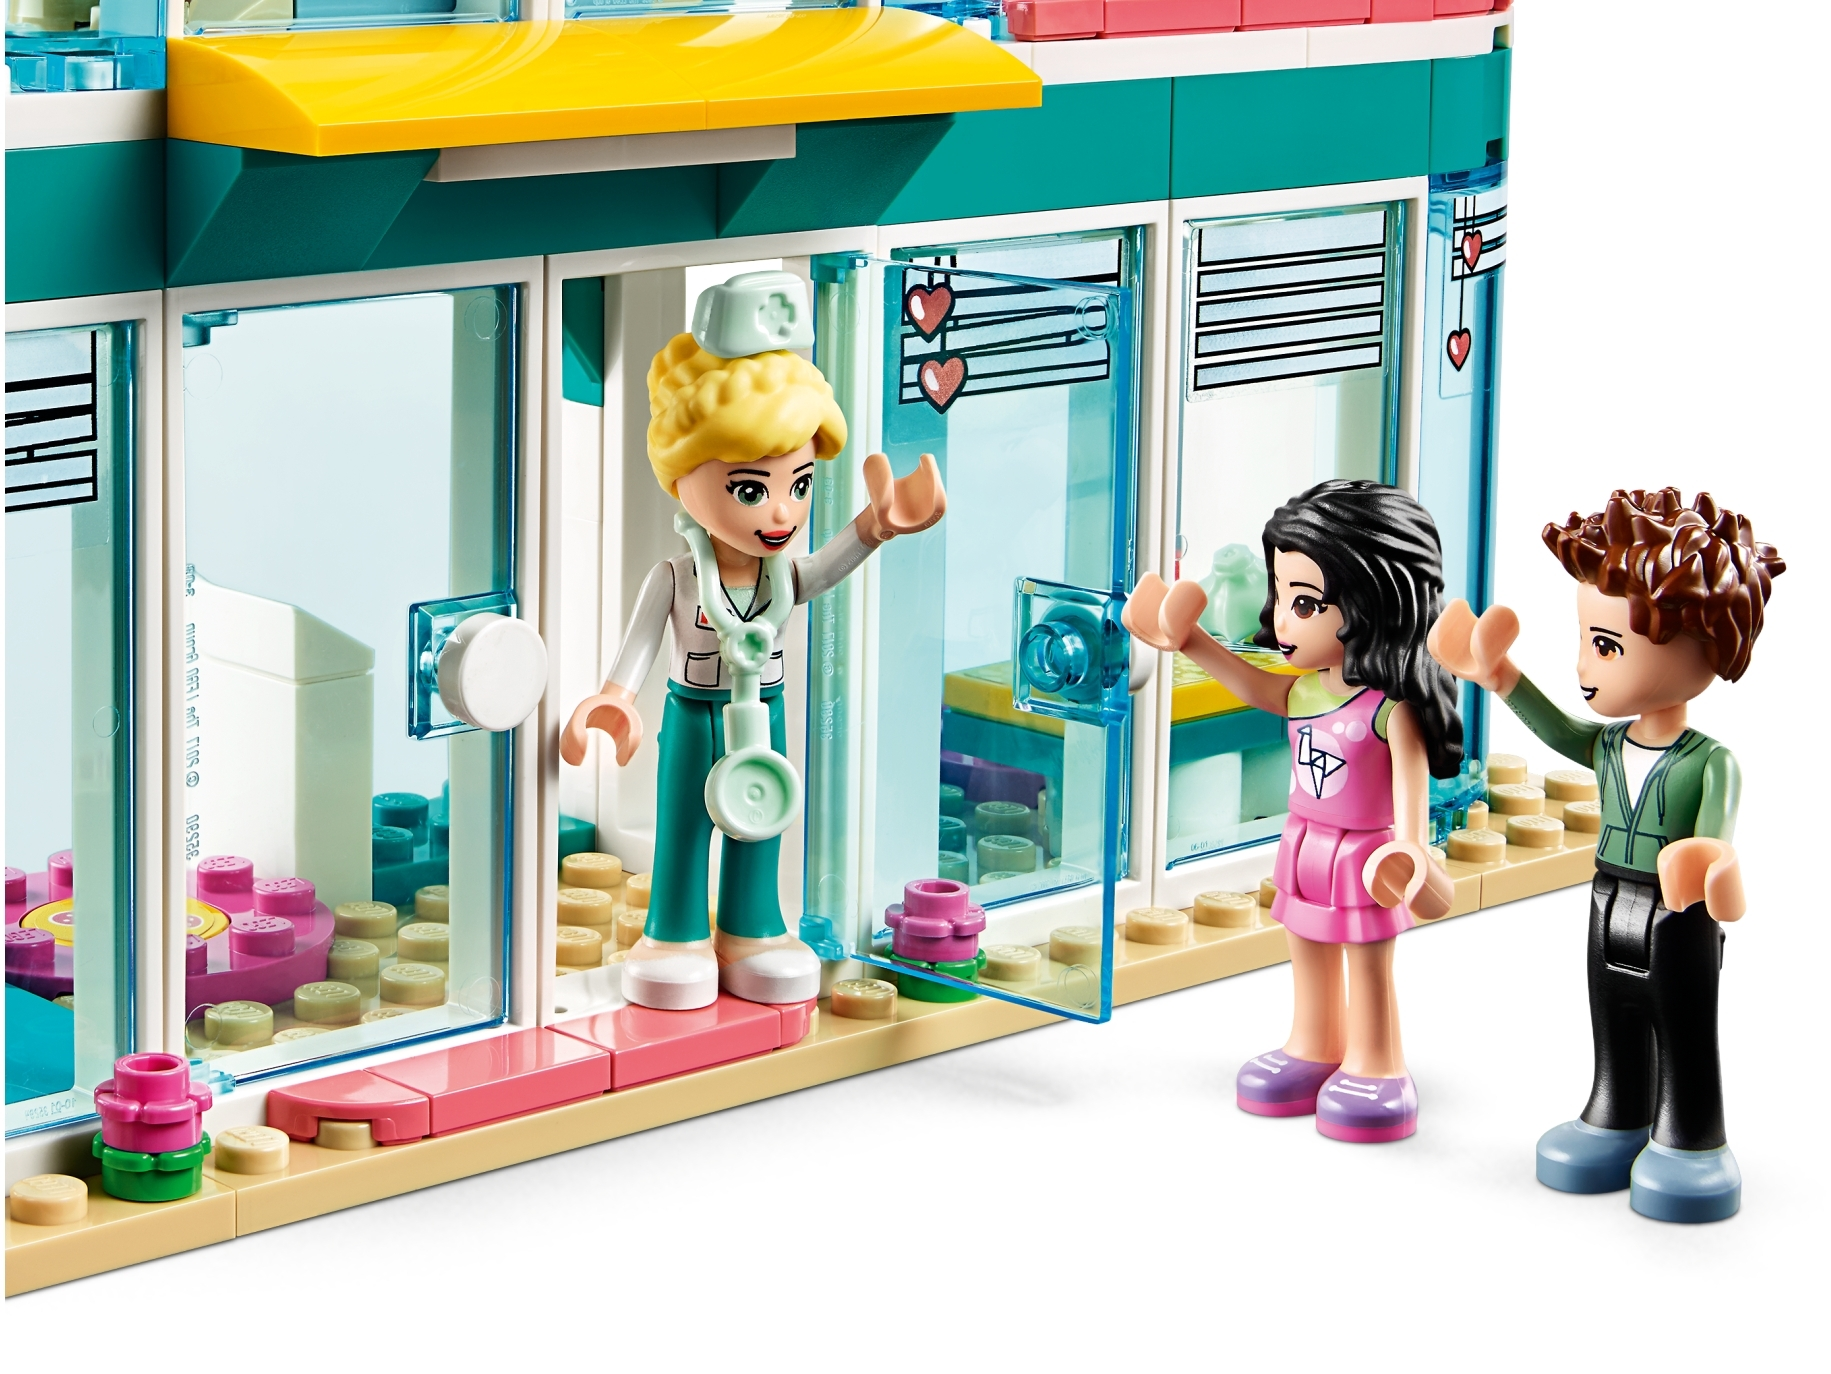 LEGO Friends Heartlake City Hospital 41394 Best Doctor Toy Building Kit Featuring LEGO Friends Character Emma New 2020 379 Pieces